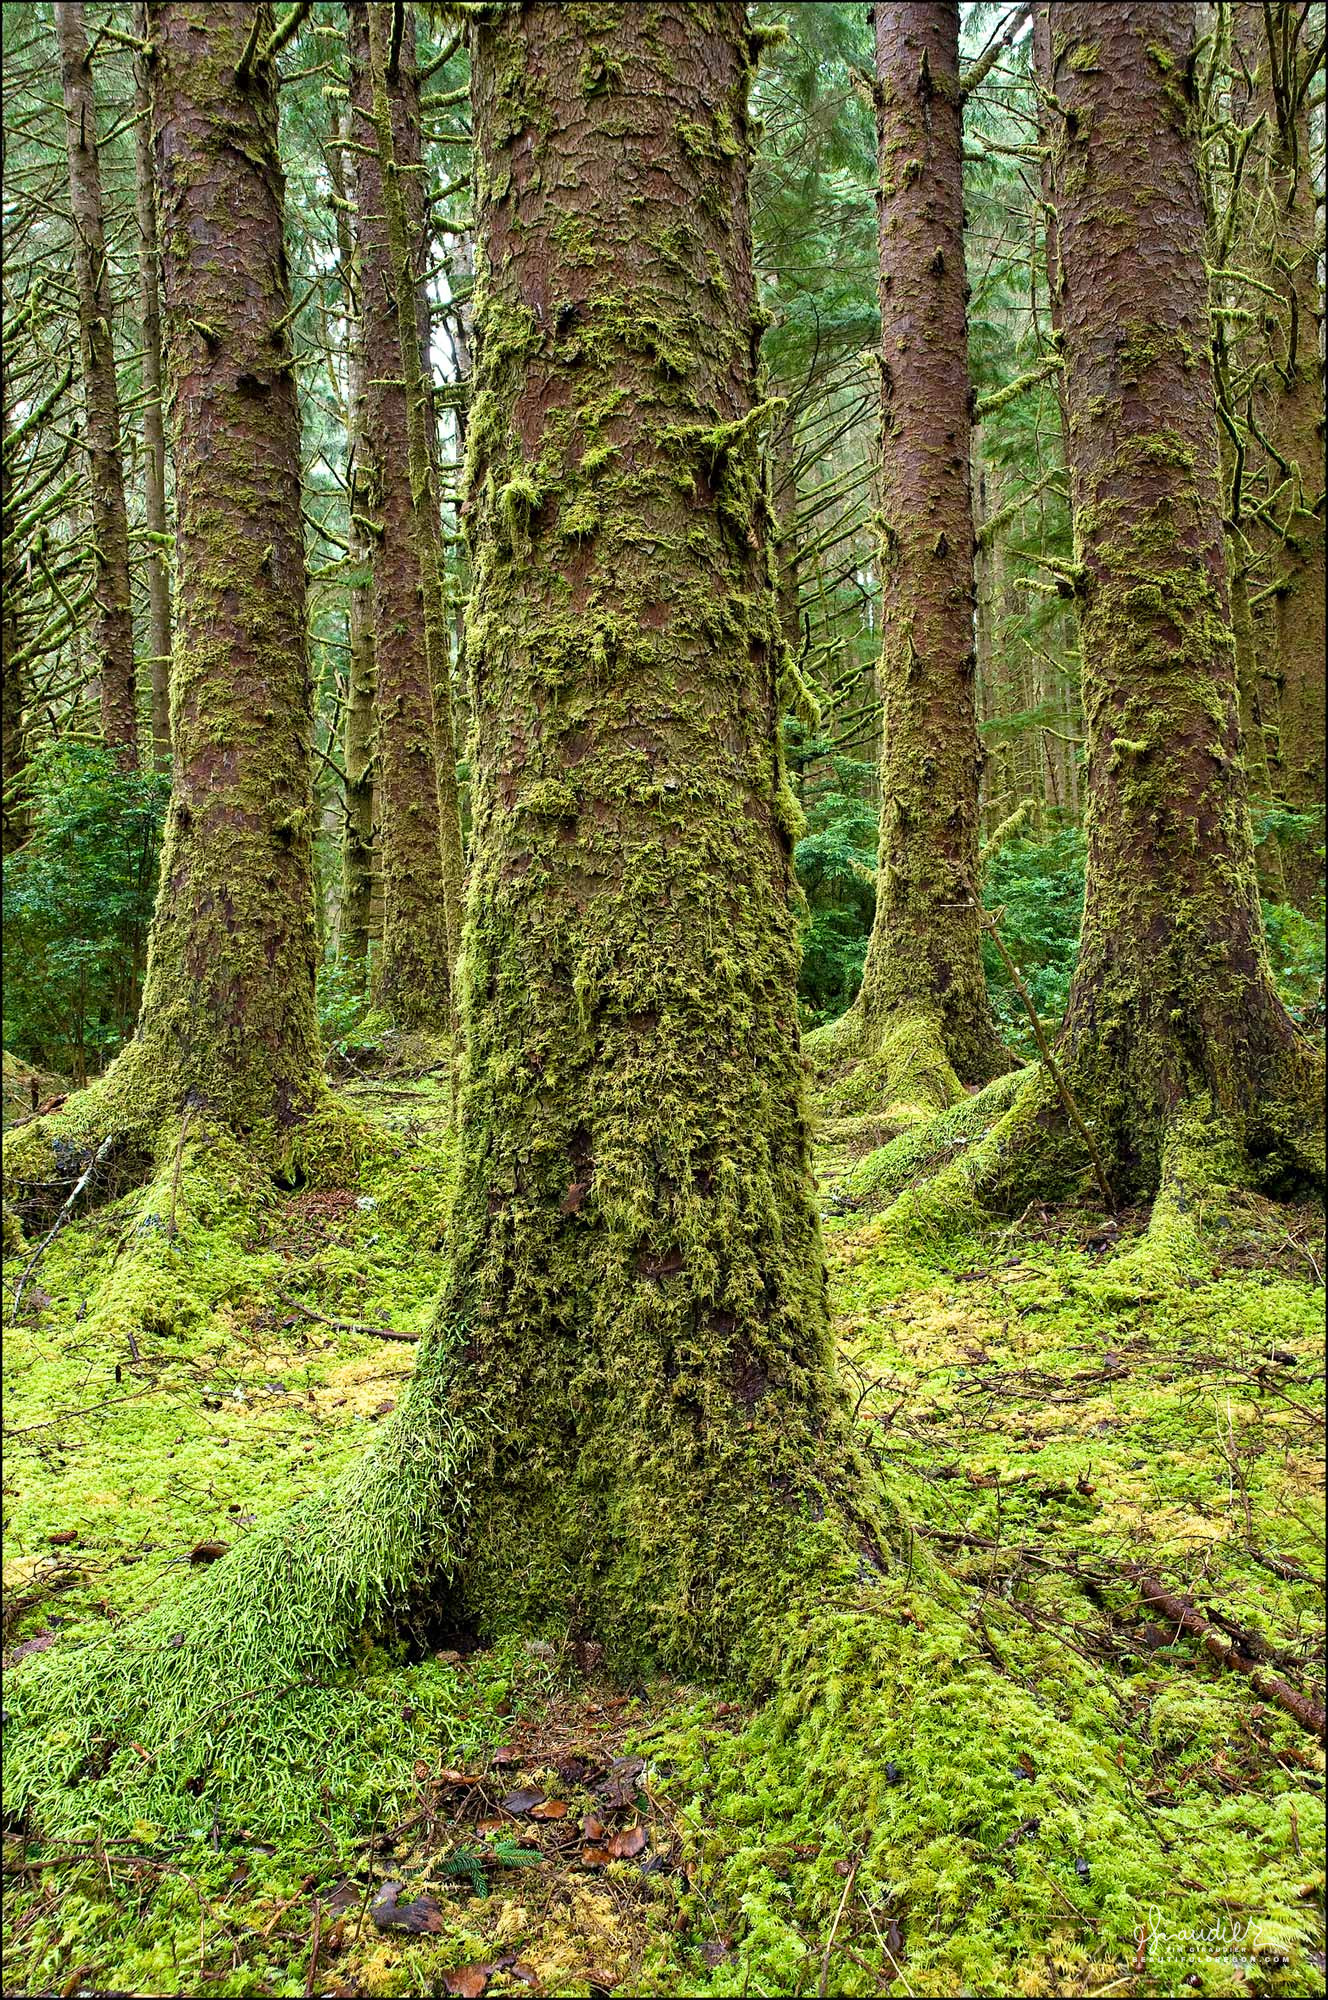 Sitka Spruce (Picea sitchensis) in a mossy forest. Siuslaw National Forest. Lane County, Central Oregon Coast